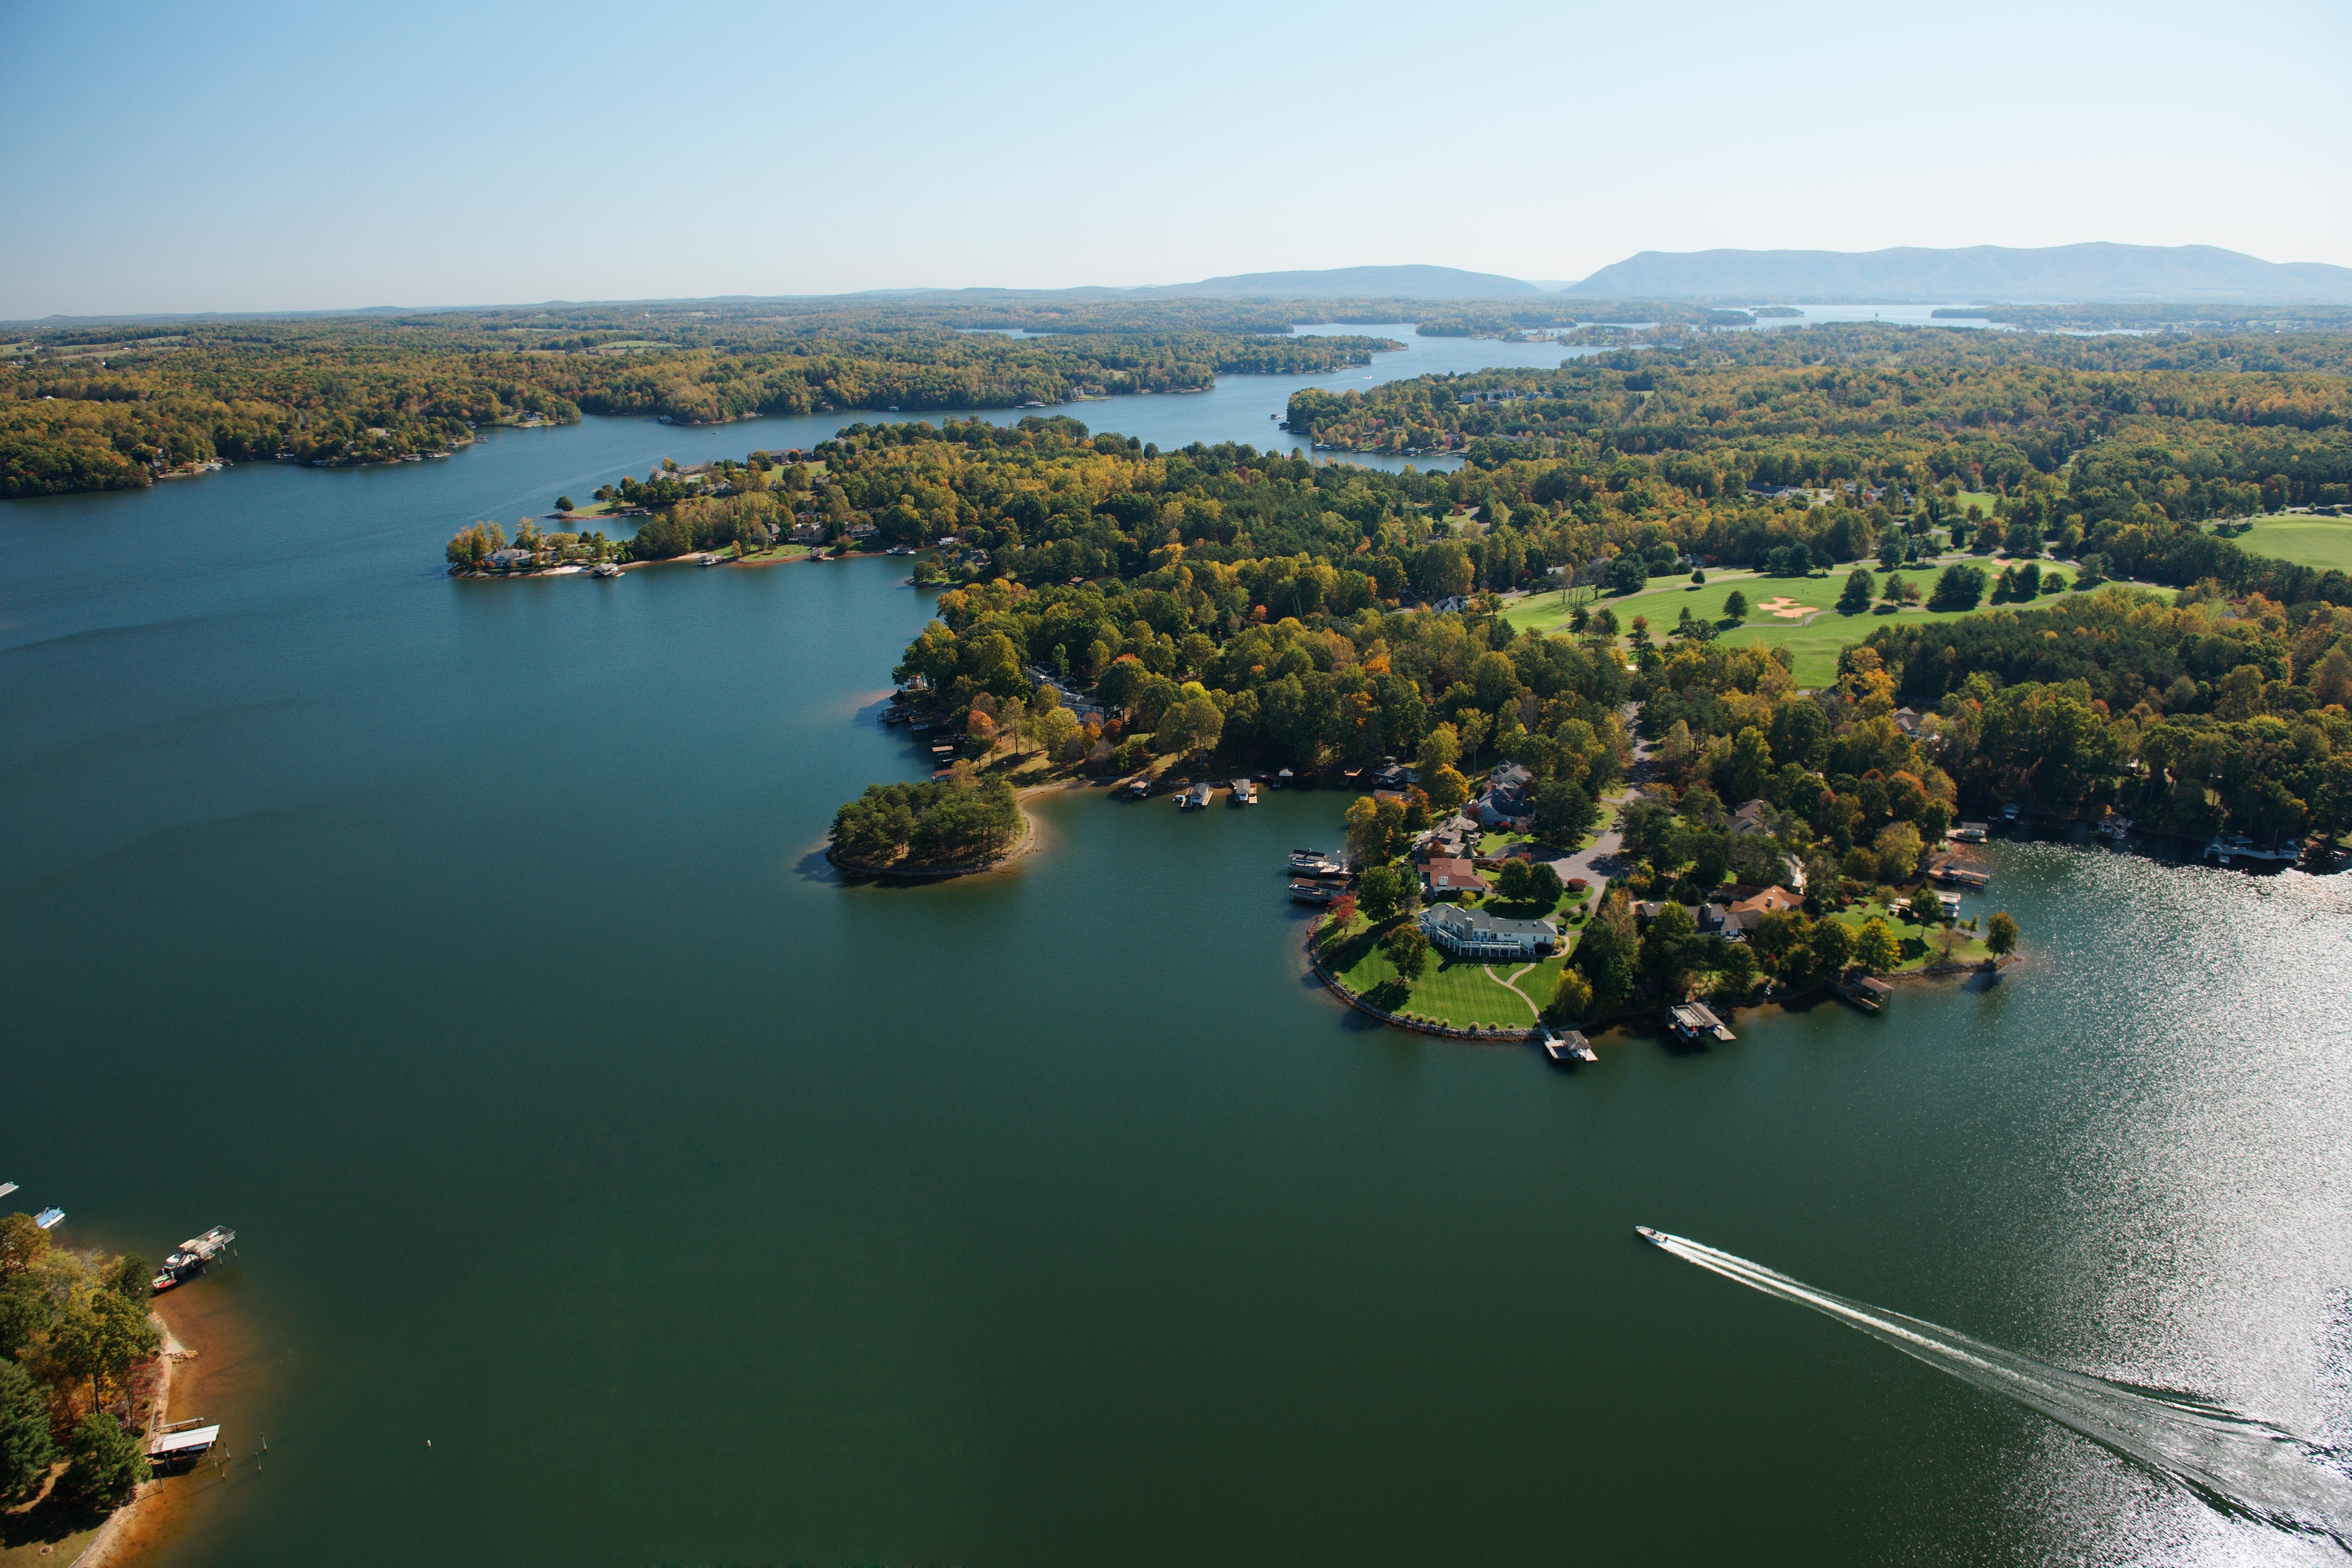 Smith Mountain Lake offers fishing, boating, swimming and rentals along the lake shore (Image: Cameron Davidson)<br>